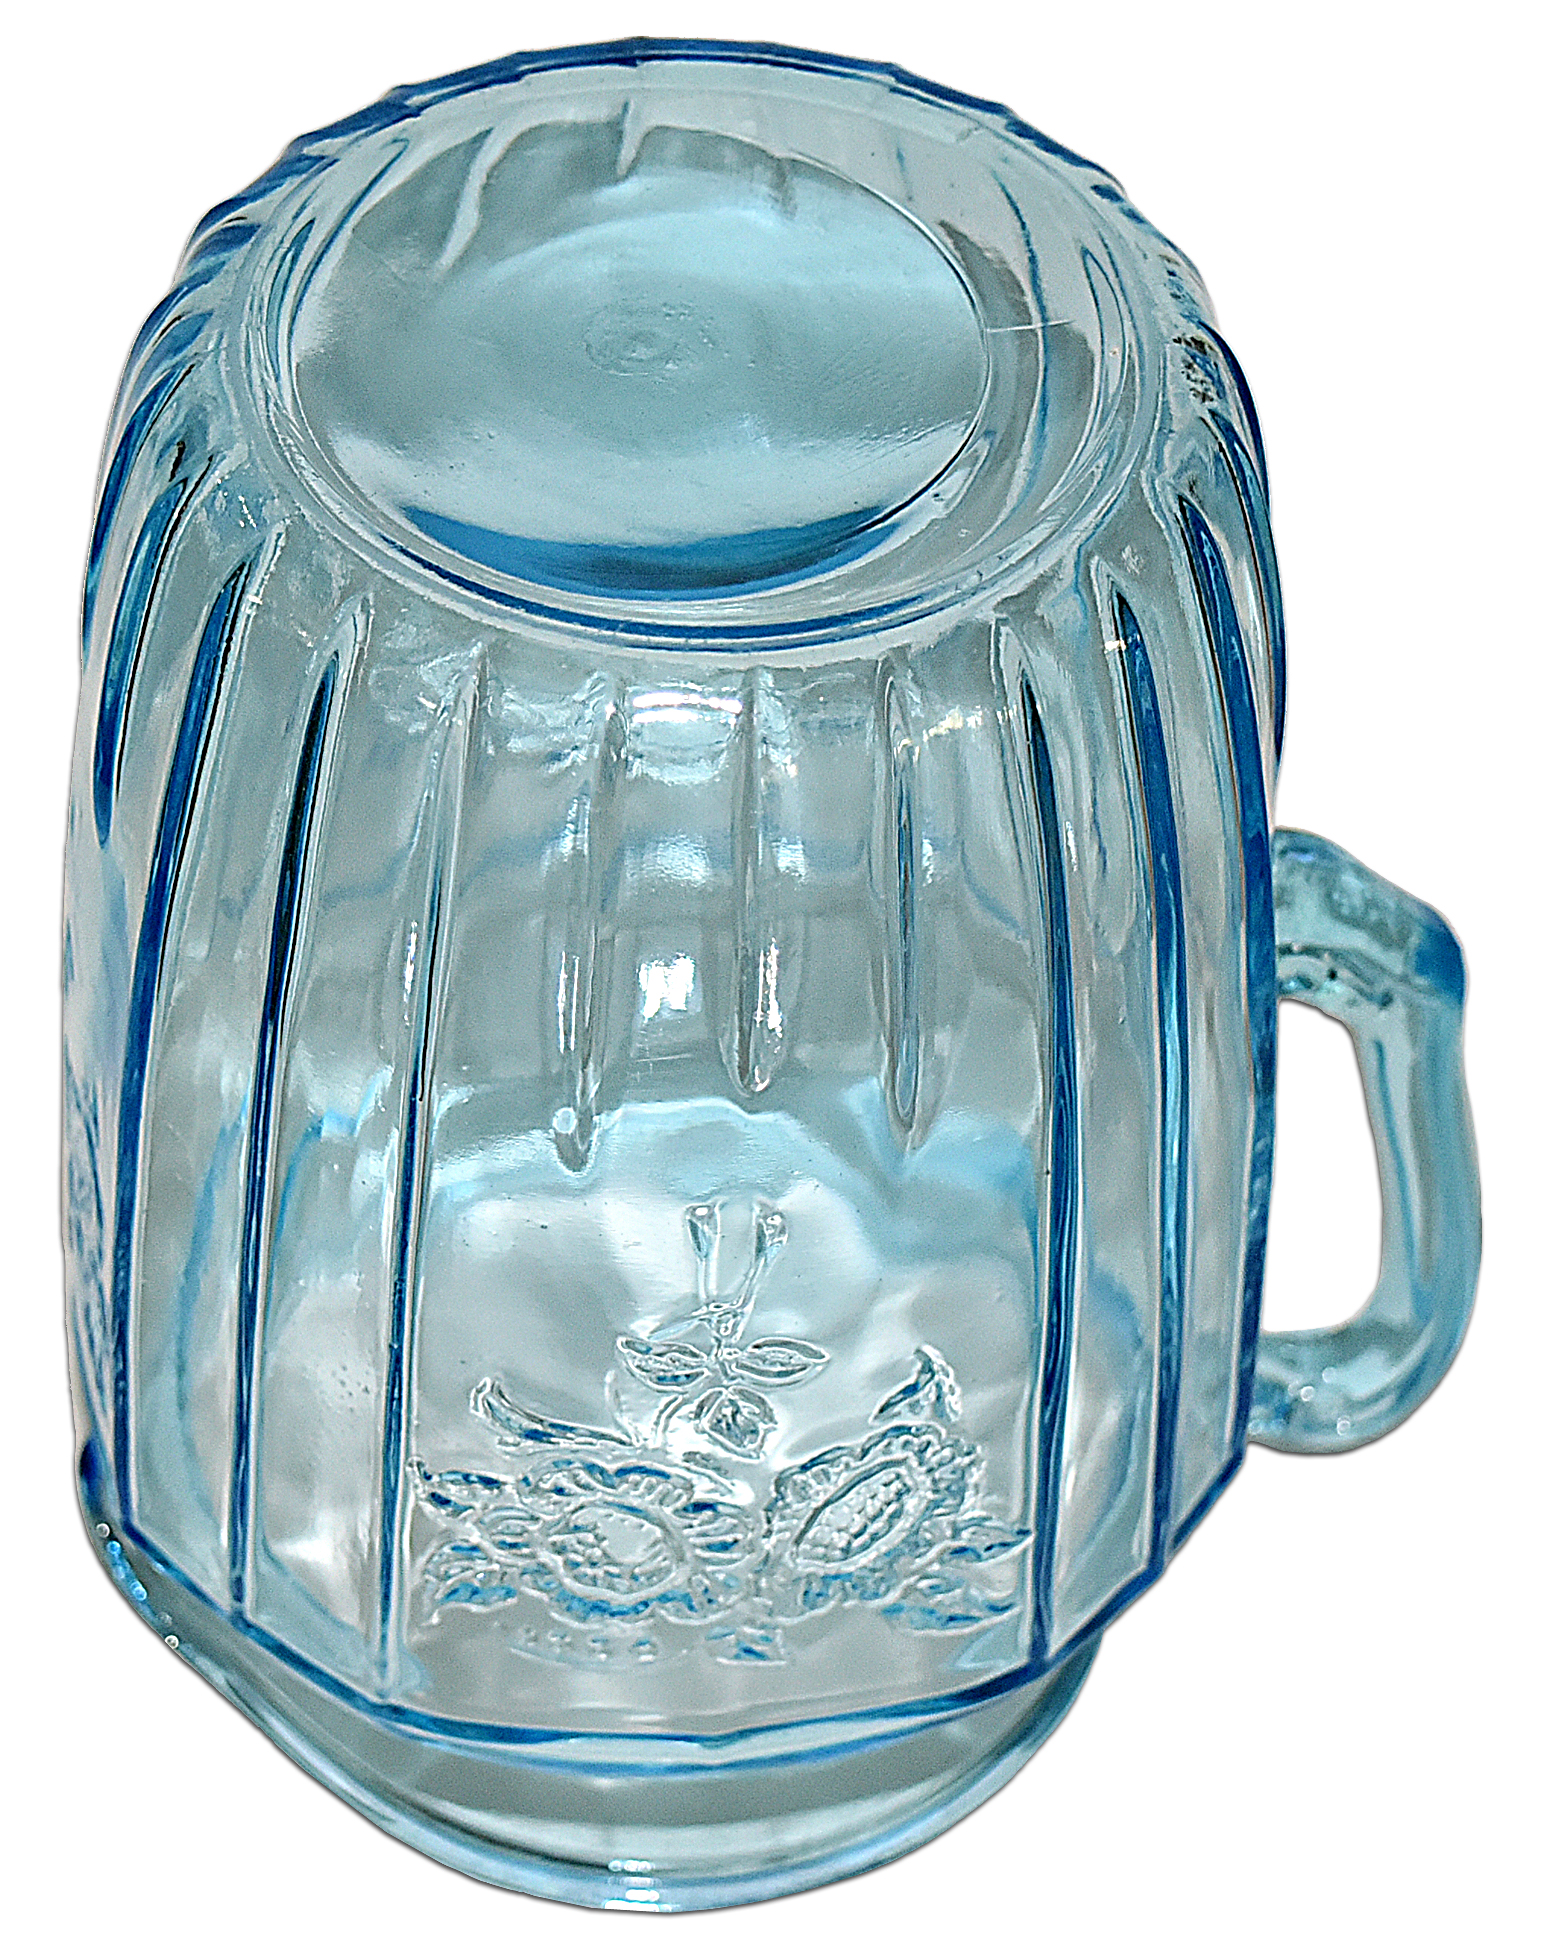 Hocking Blue Mayfair Large Pitcher / Jug Bottom